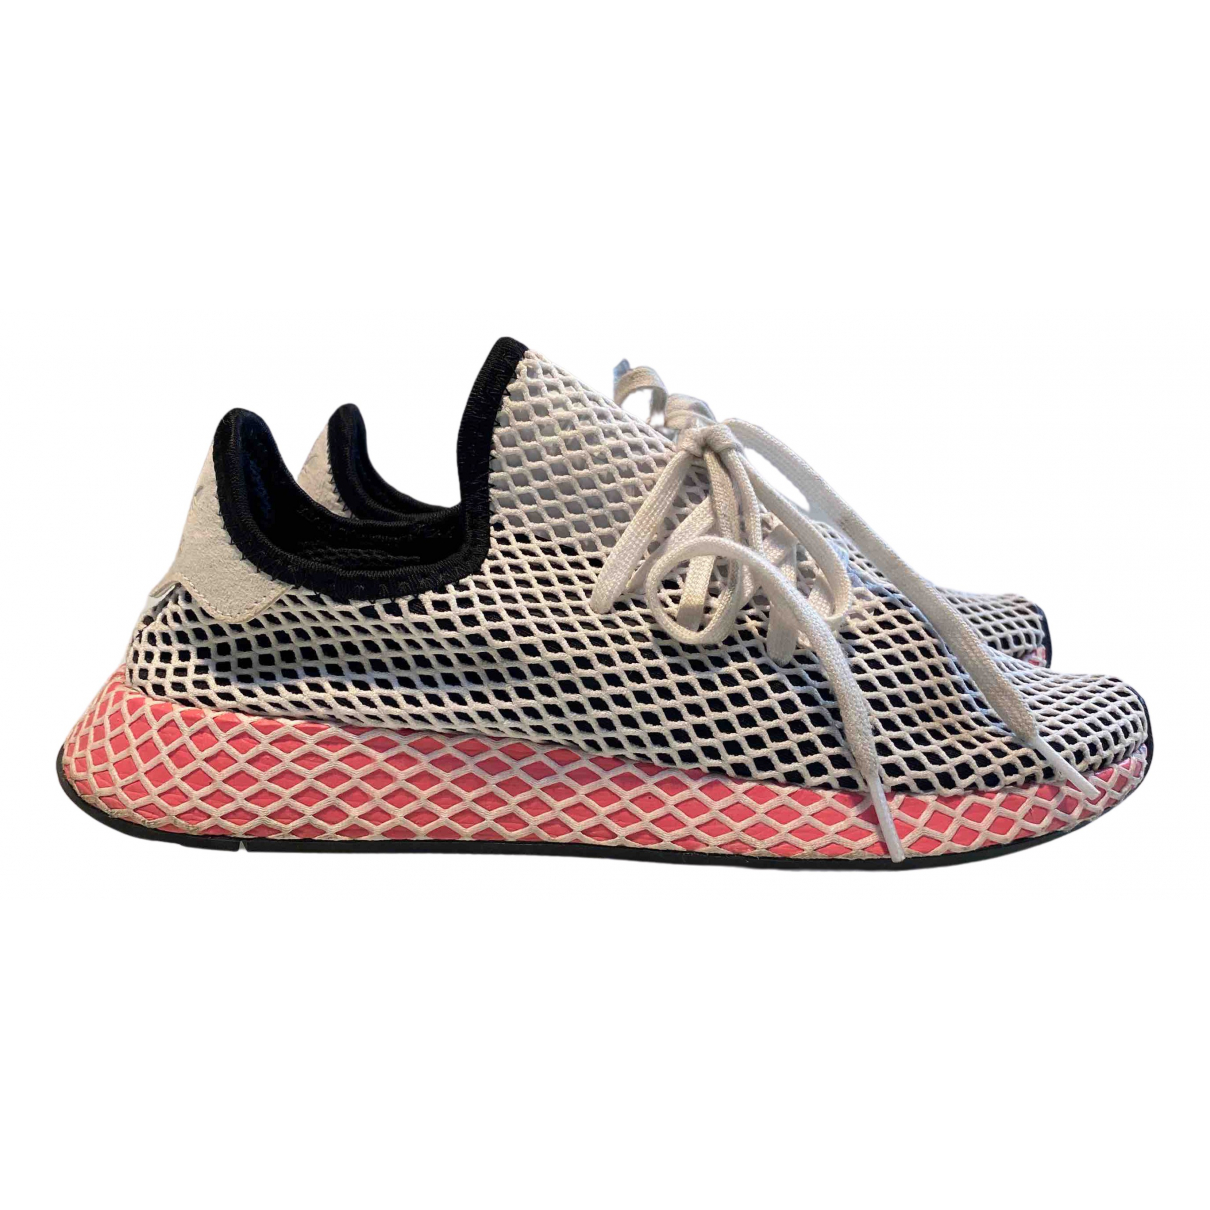 Adidas Deerupt Runner White Cloth Trainers for Women 42 EU